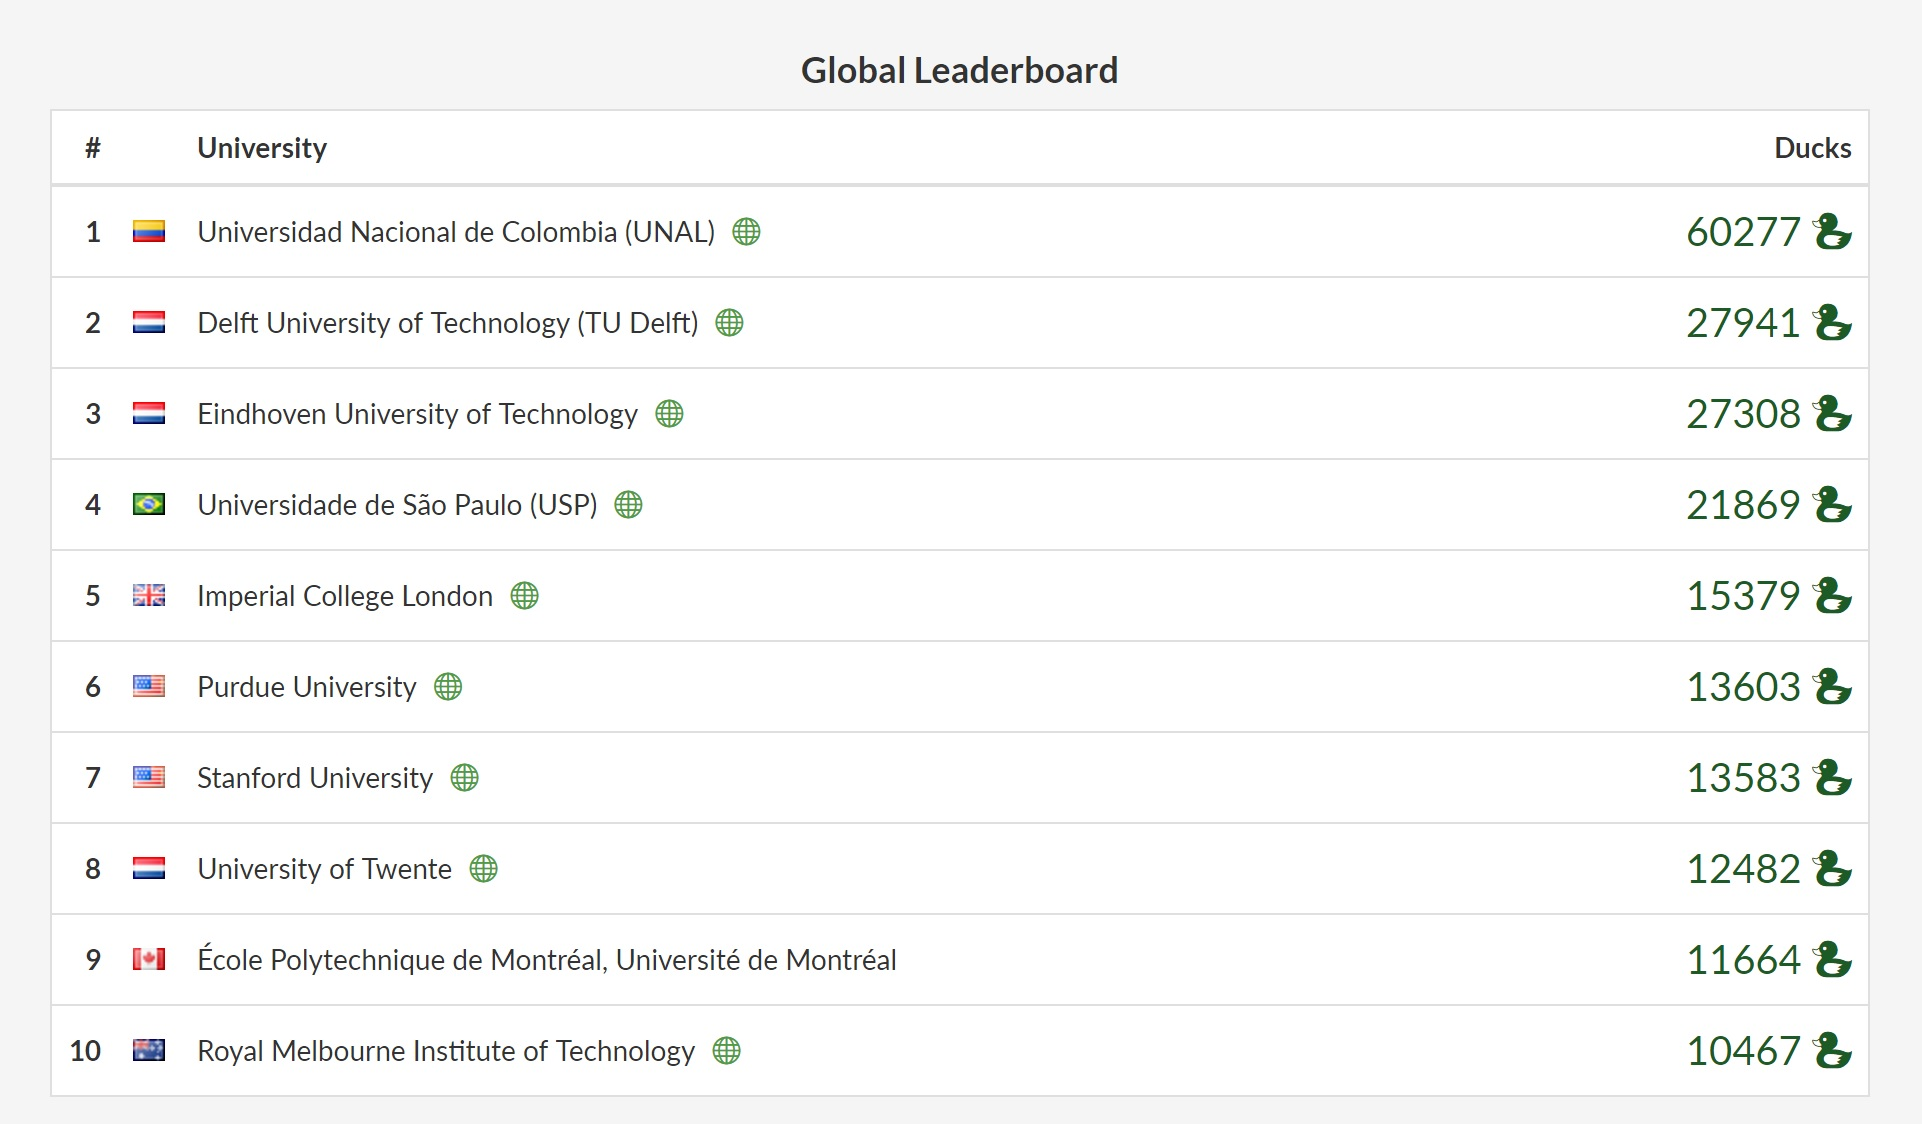 Overleaf Campus Challenge Final Global Leaderboard 2017